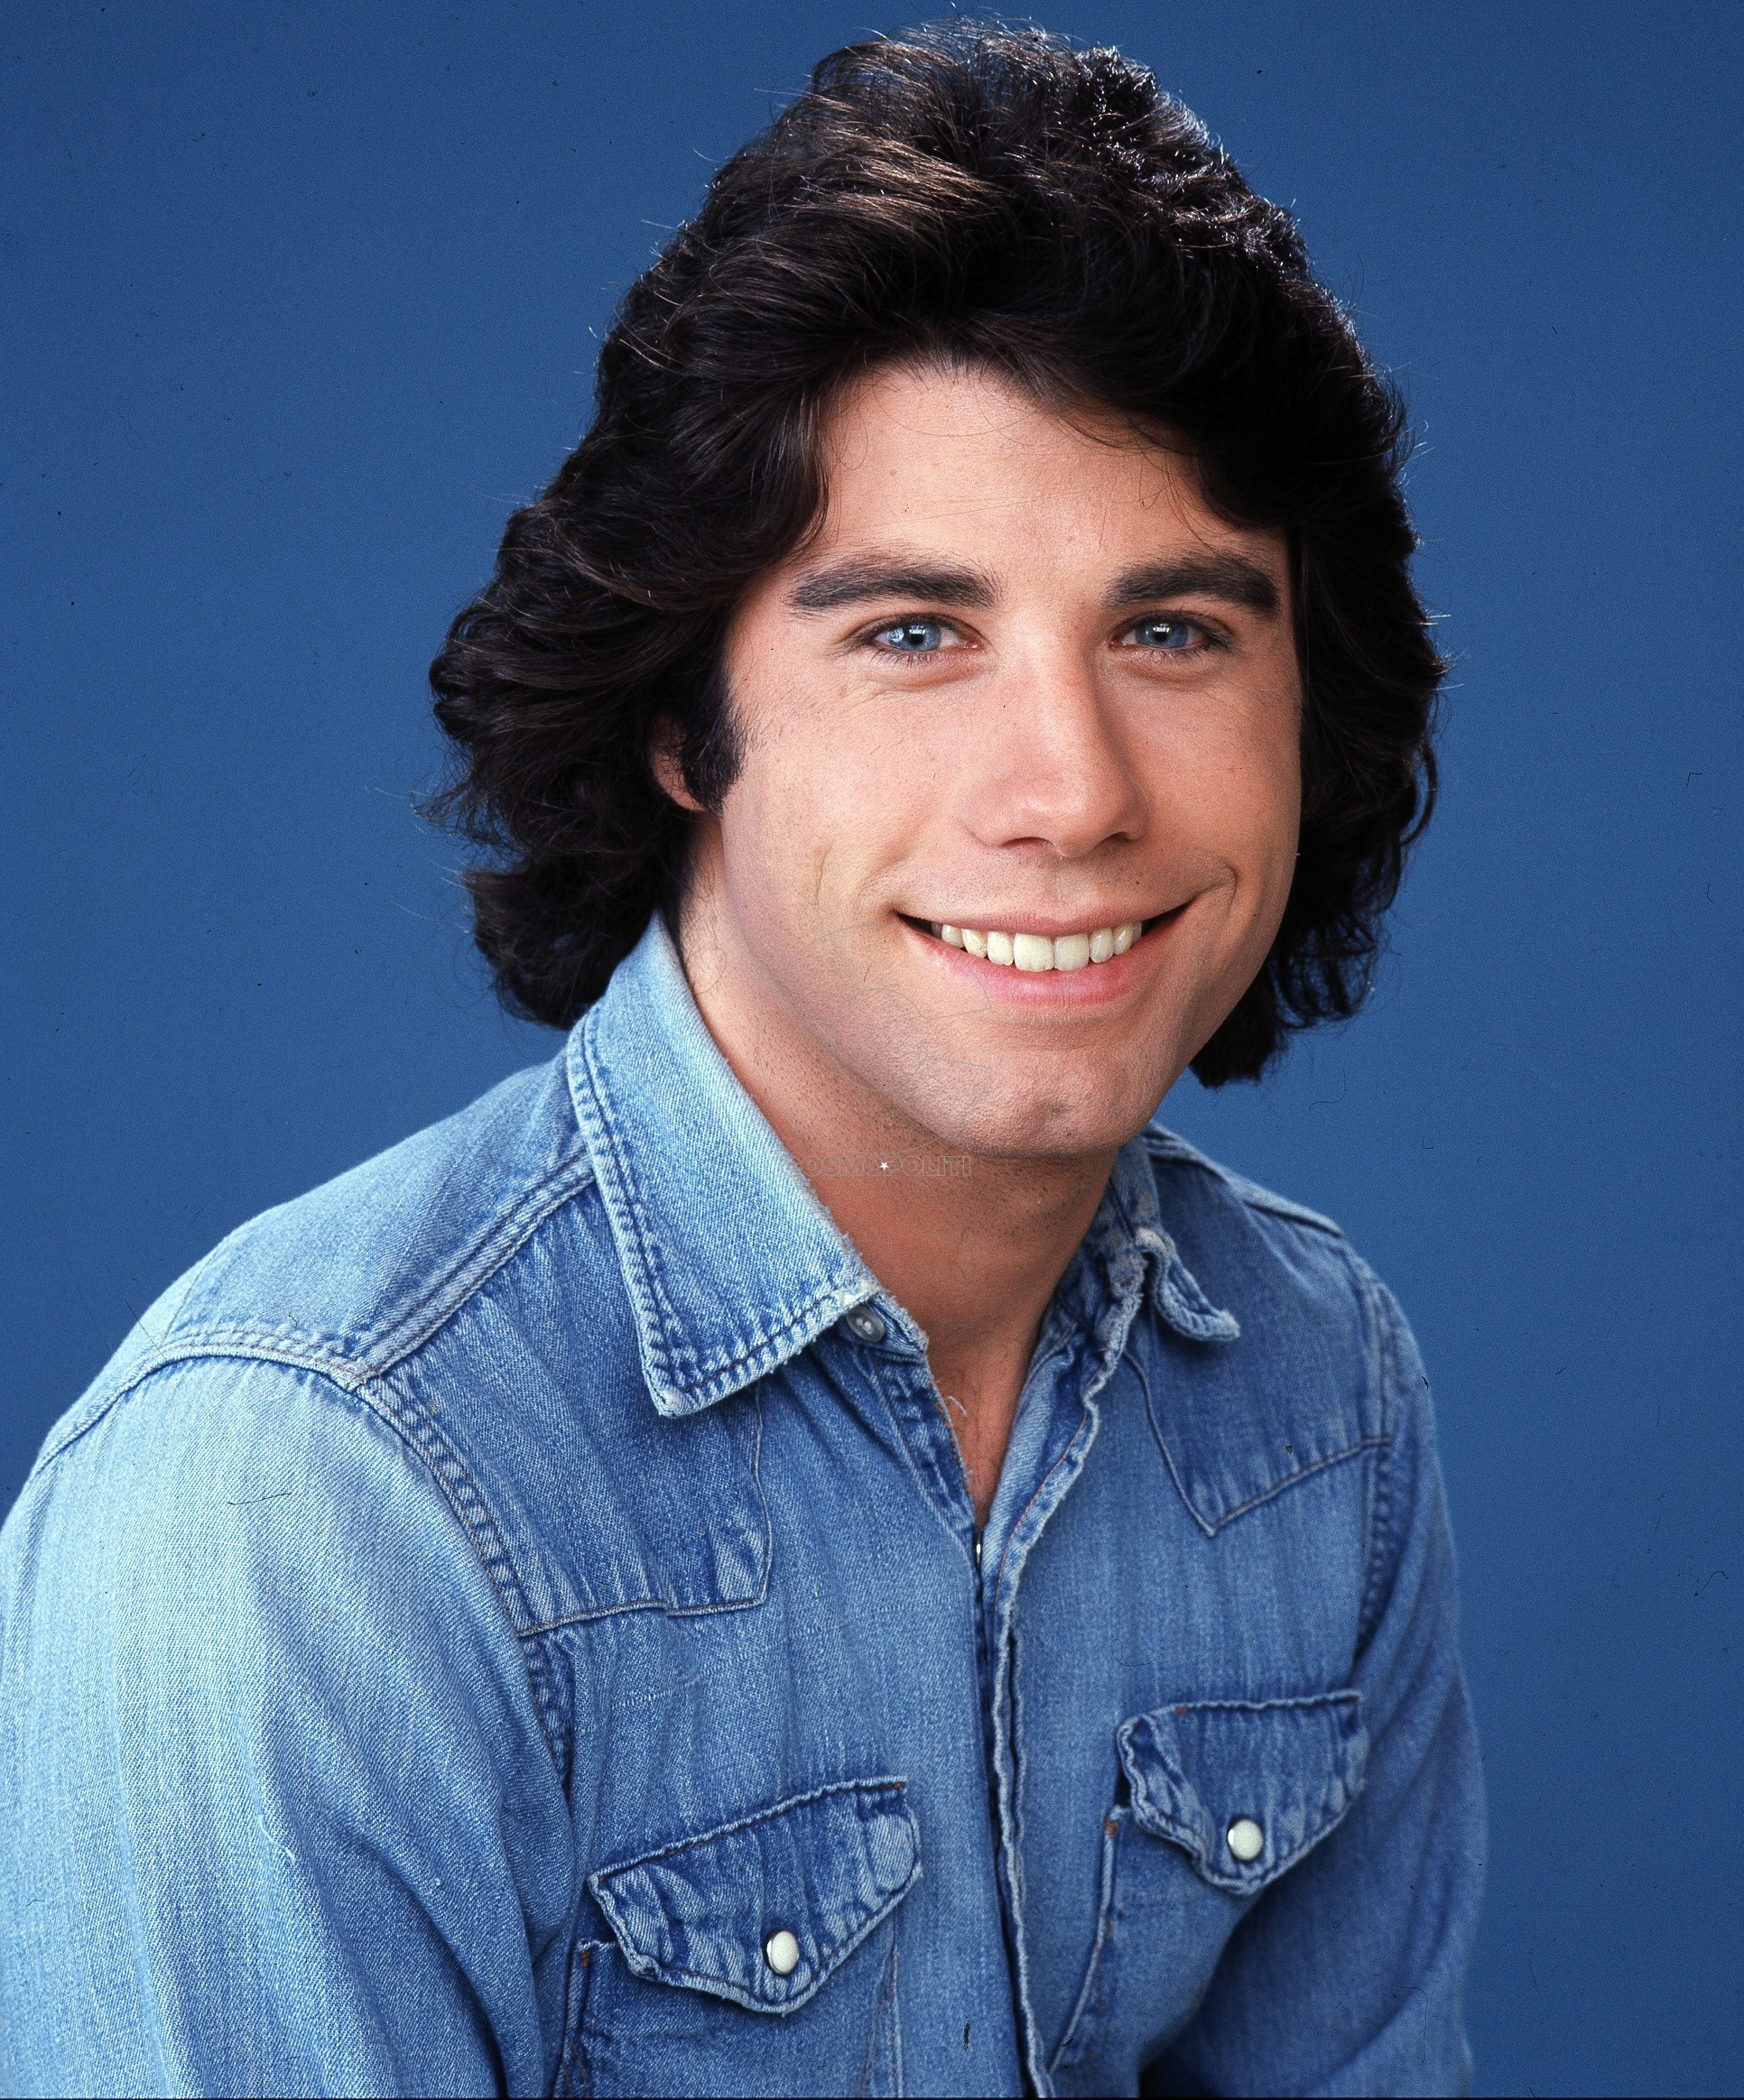 UNITED STATES - SEPTEMBER 09:  WELCOME BACK, KOTTER - John Travolta Portrait - Pilot -, 9/9/75, John Travolta played Vinnie Barbarino, the leader and ladies' man of the Sweathogs, a class of delinquents in a Brooklyn high school.,  (Photo by ABC Photo Archives/ABC via Getty Images)